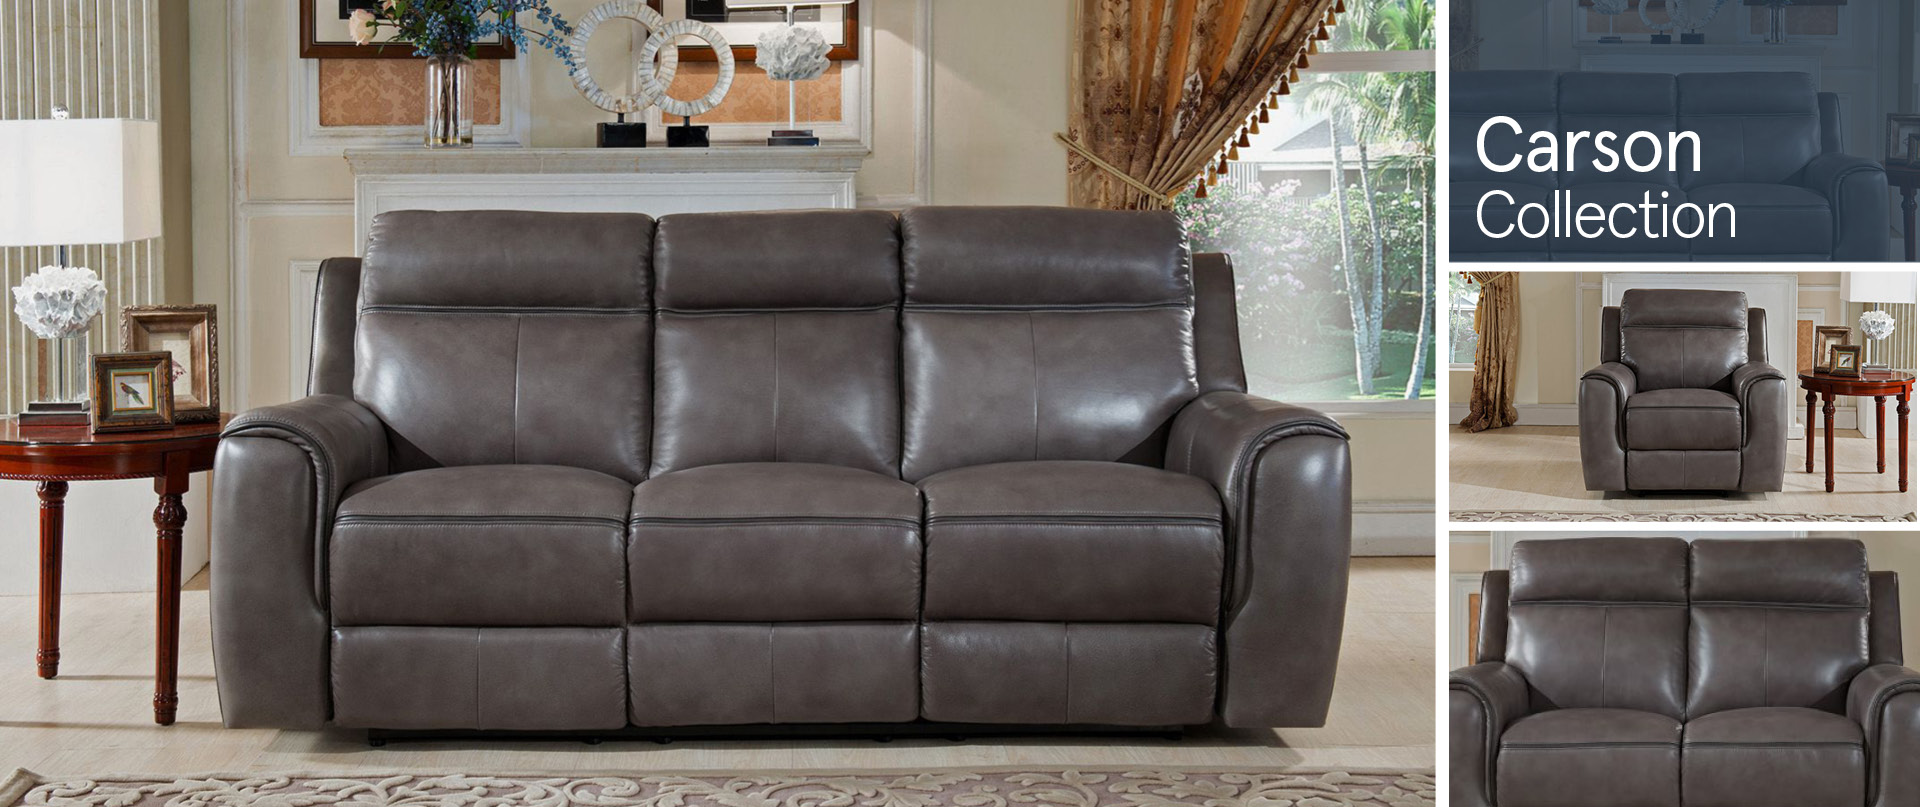 Carson Leather Sofa Ranges